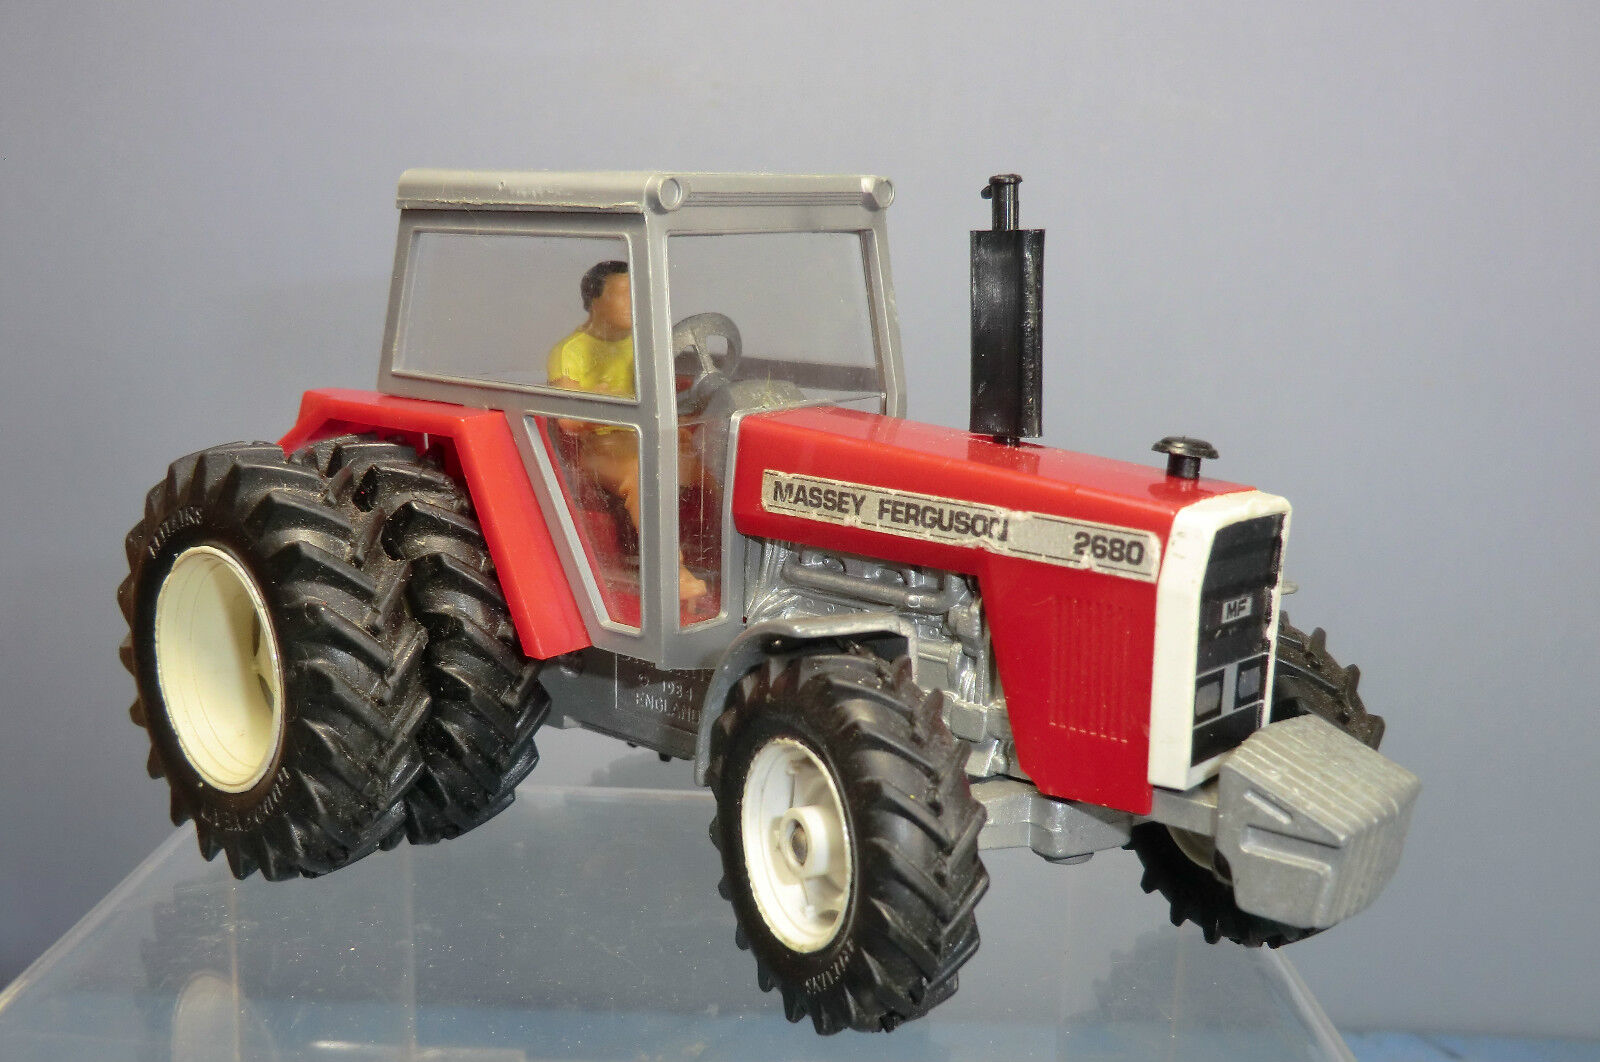 VINTAGE BRITAINS No.9517  MASSEY FERGUSON 2680 TRACTOR WITH TWIN REAR WHEELS